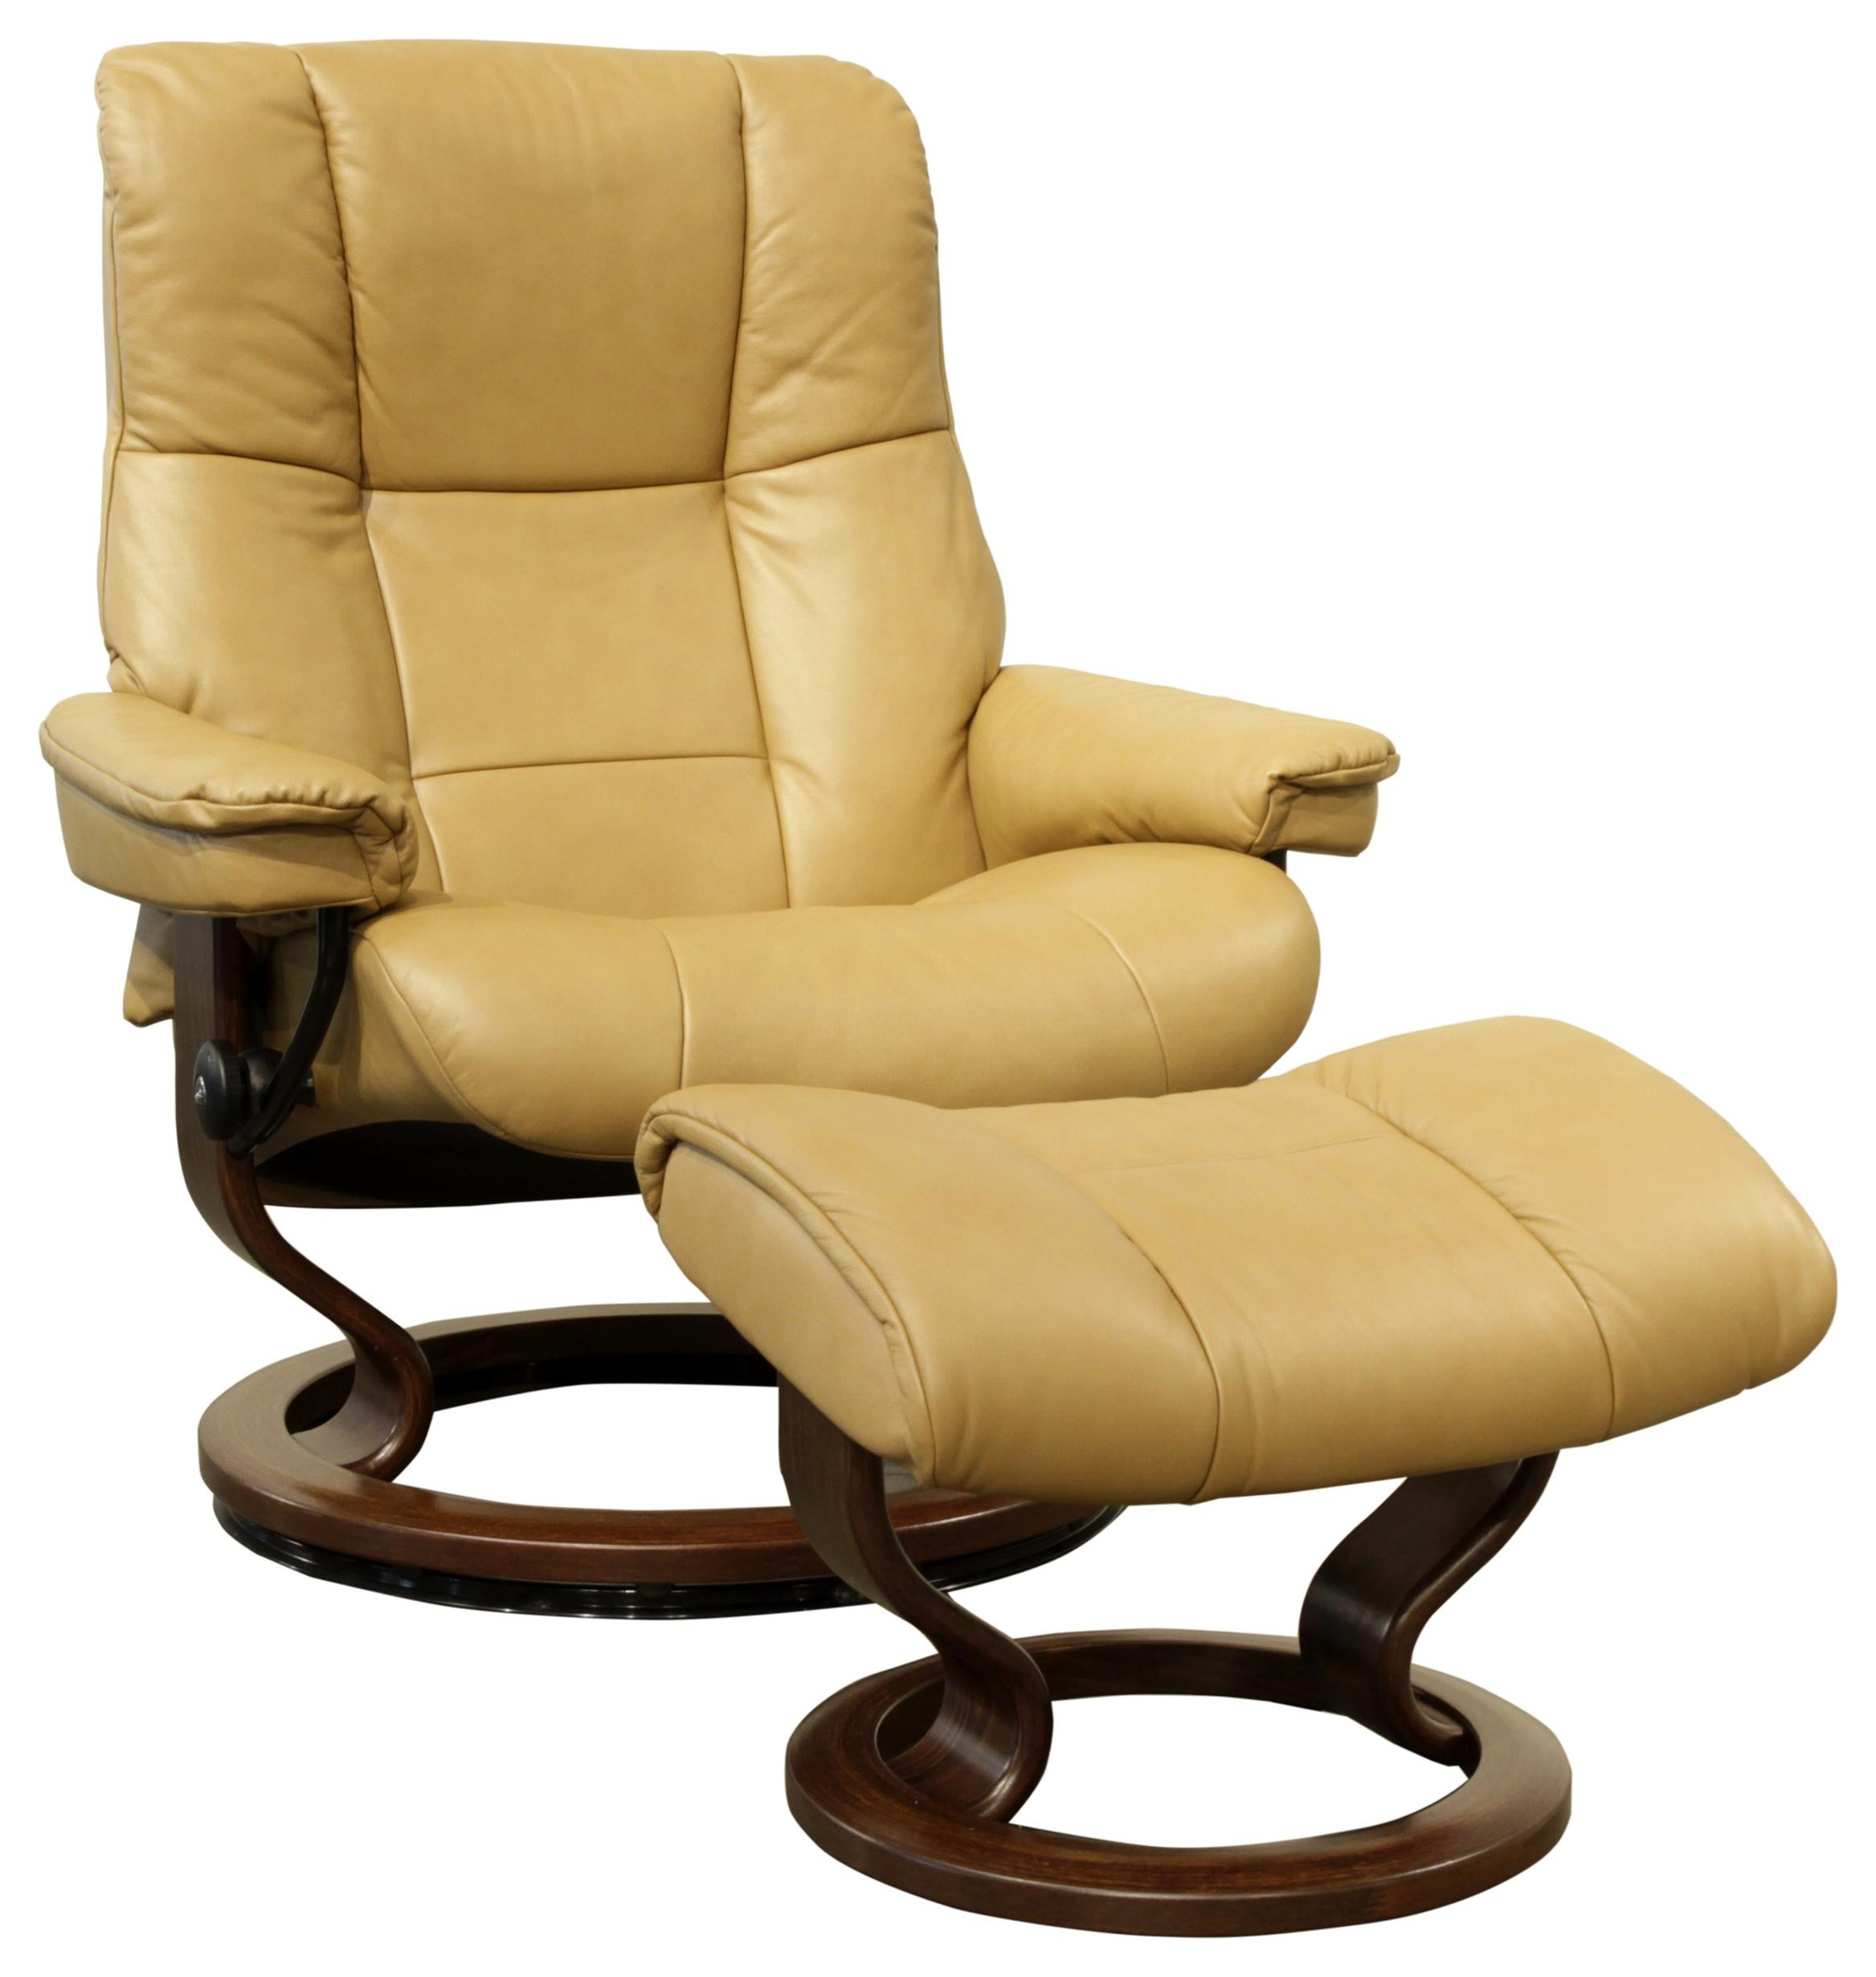 Large Stressless Chair & Ottoman by Stressless at HomeWorld Furniture